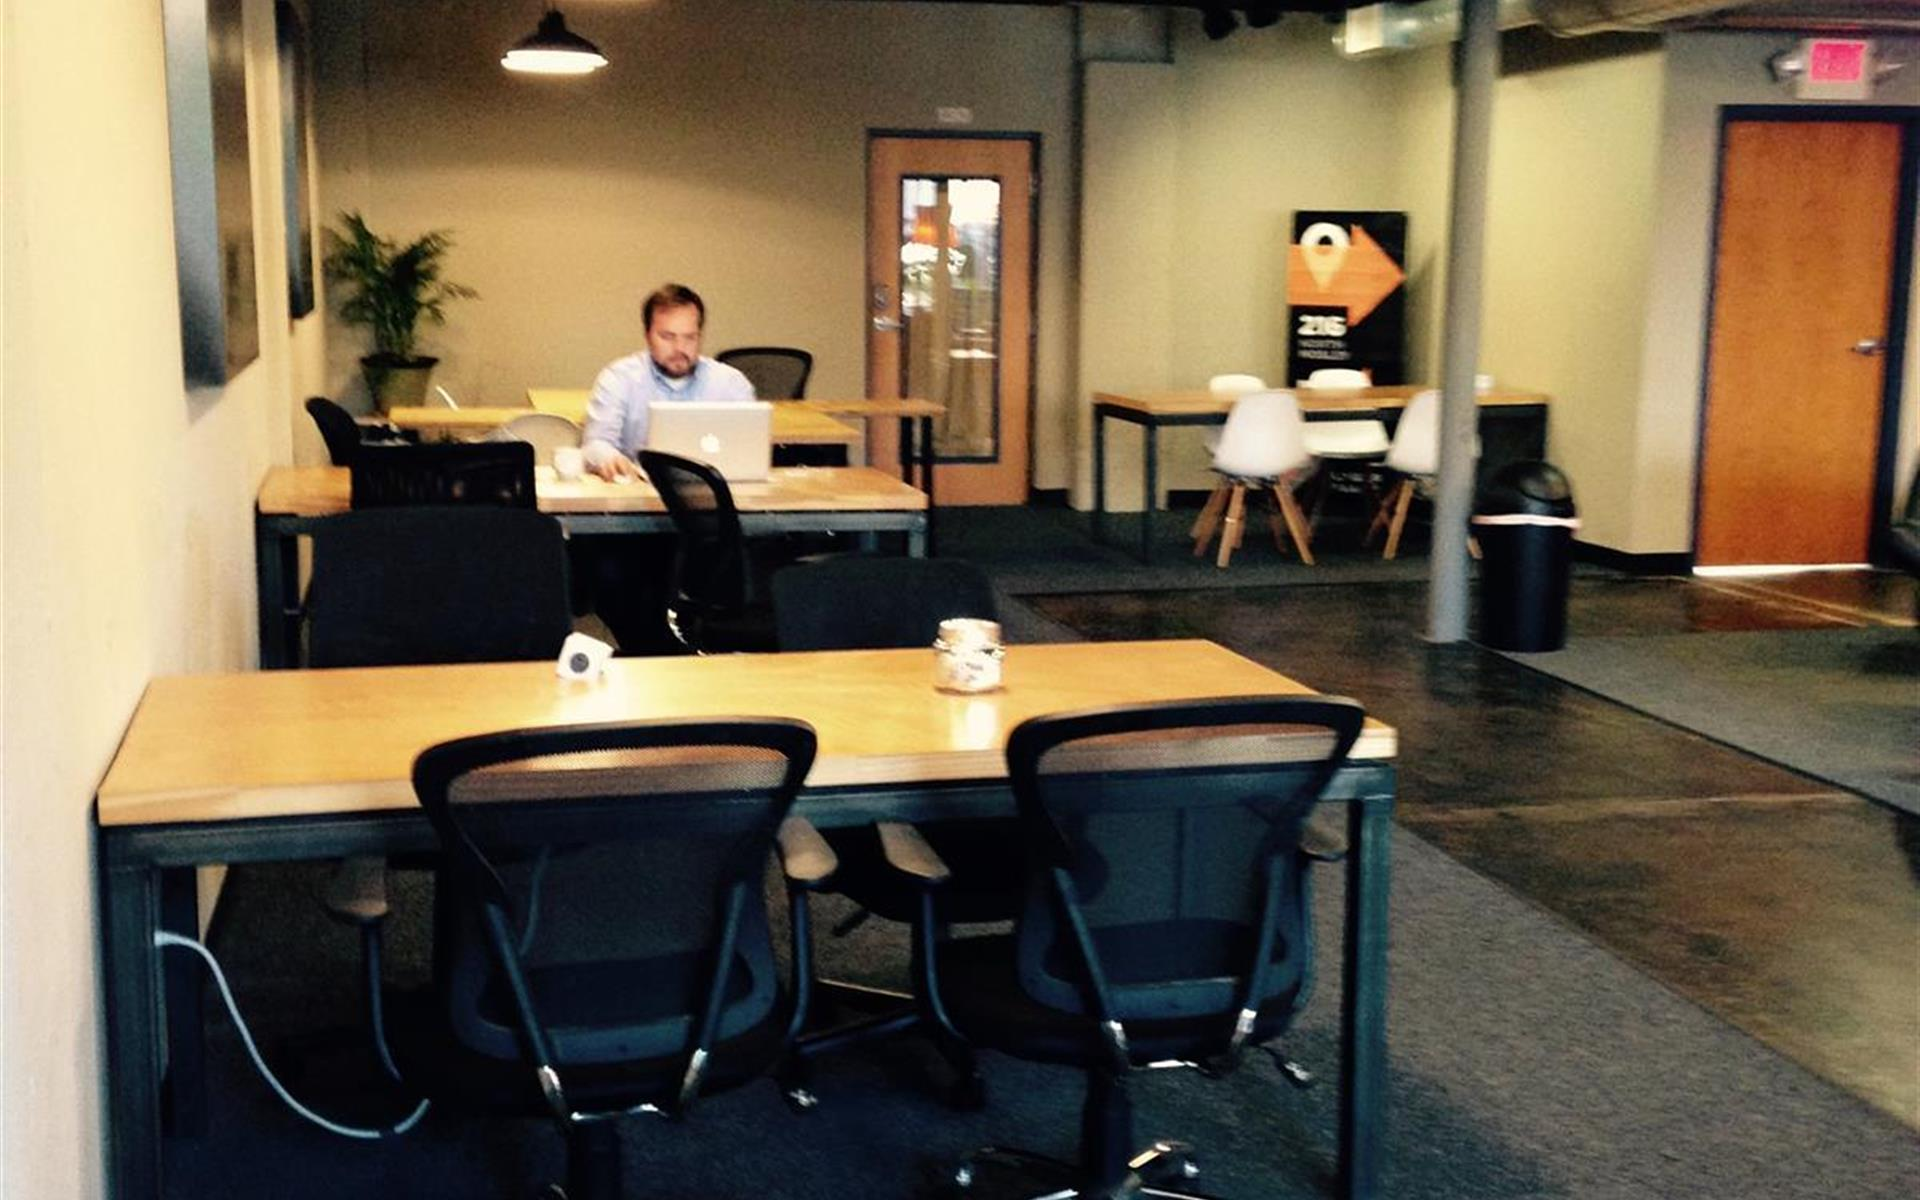 The Labor Party - Main floor coworking space